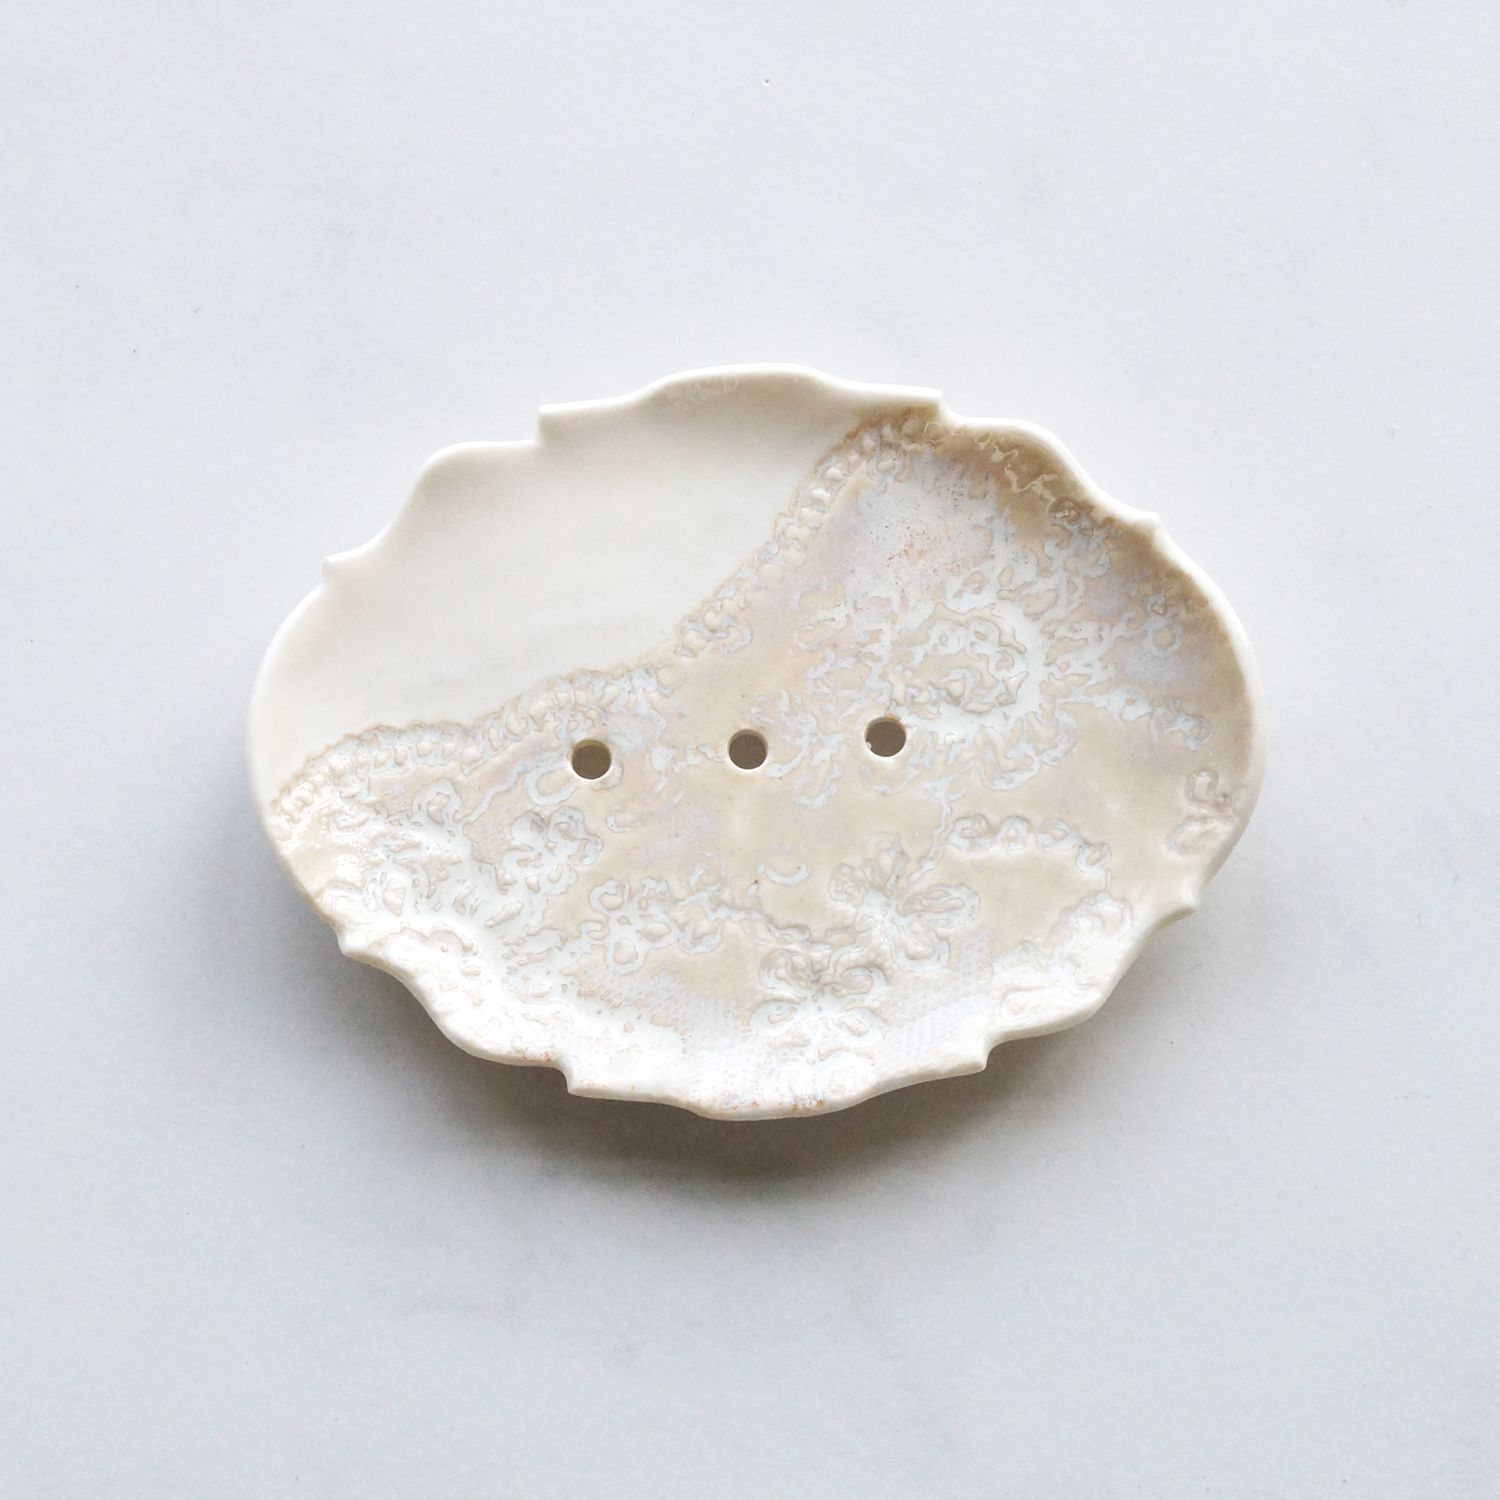 Lace Soap Dish In White Porcelain With Natural Ceramic Glaze By Vanillakiln Pottery Pottery Designs Ceramic Soap Dish